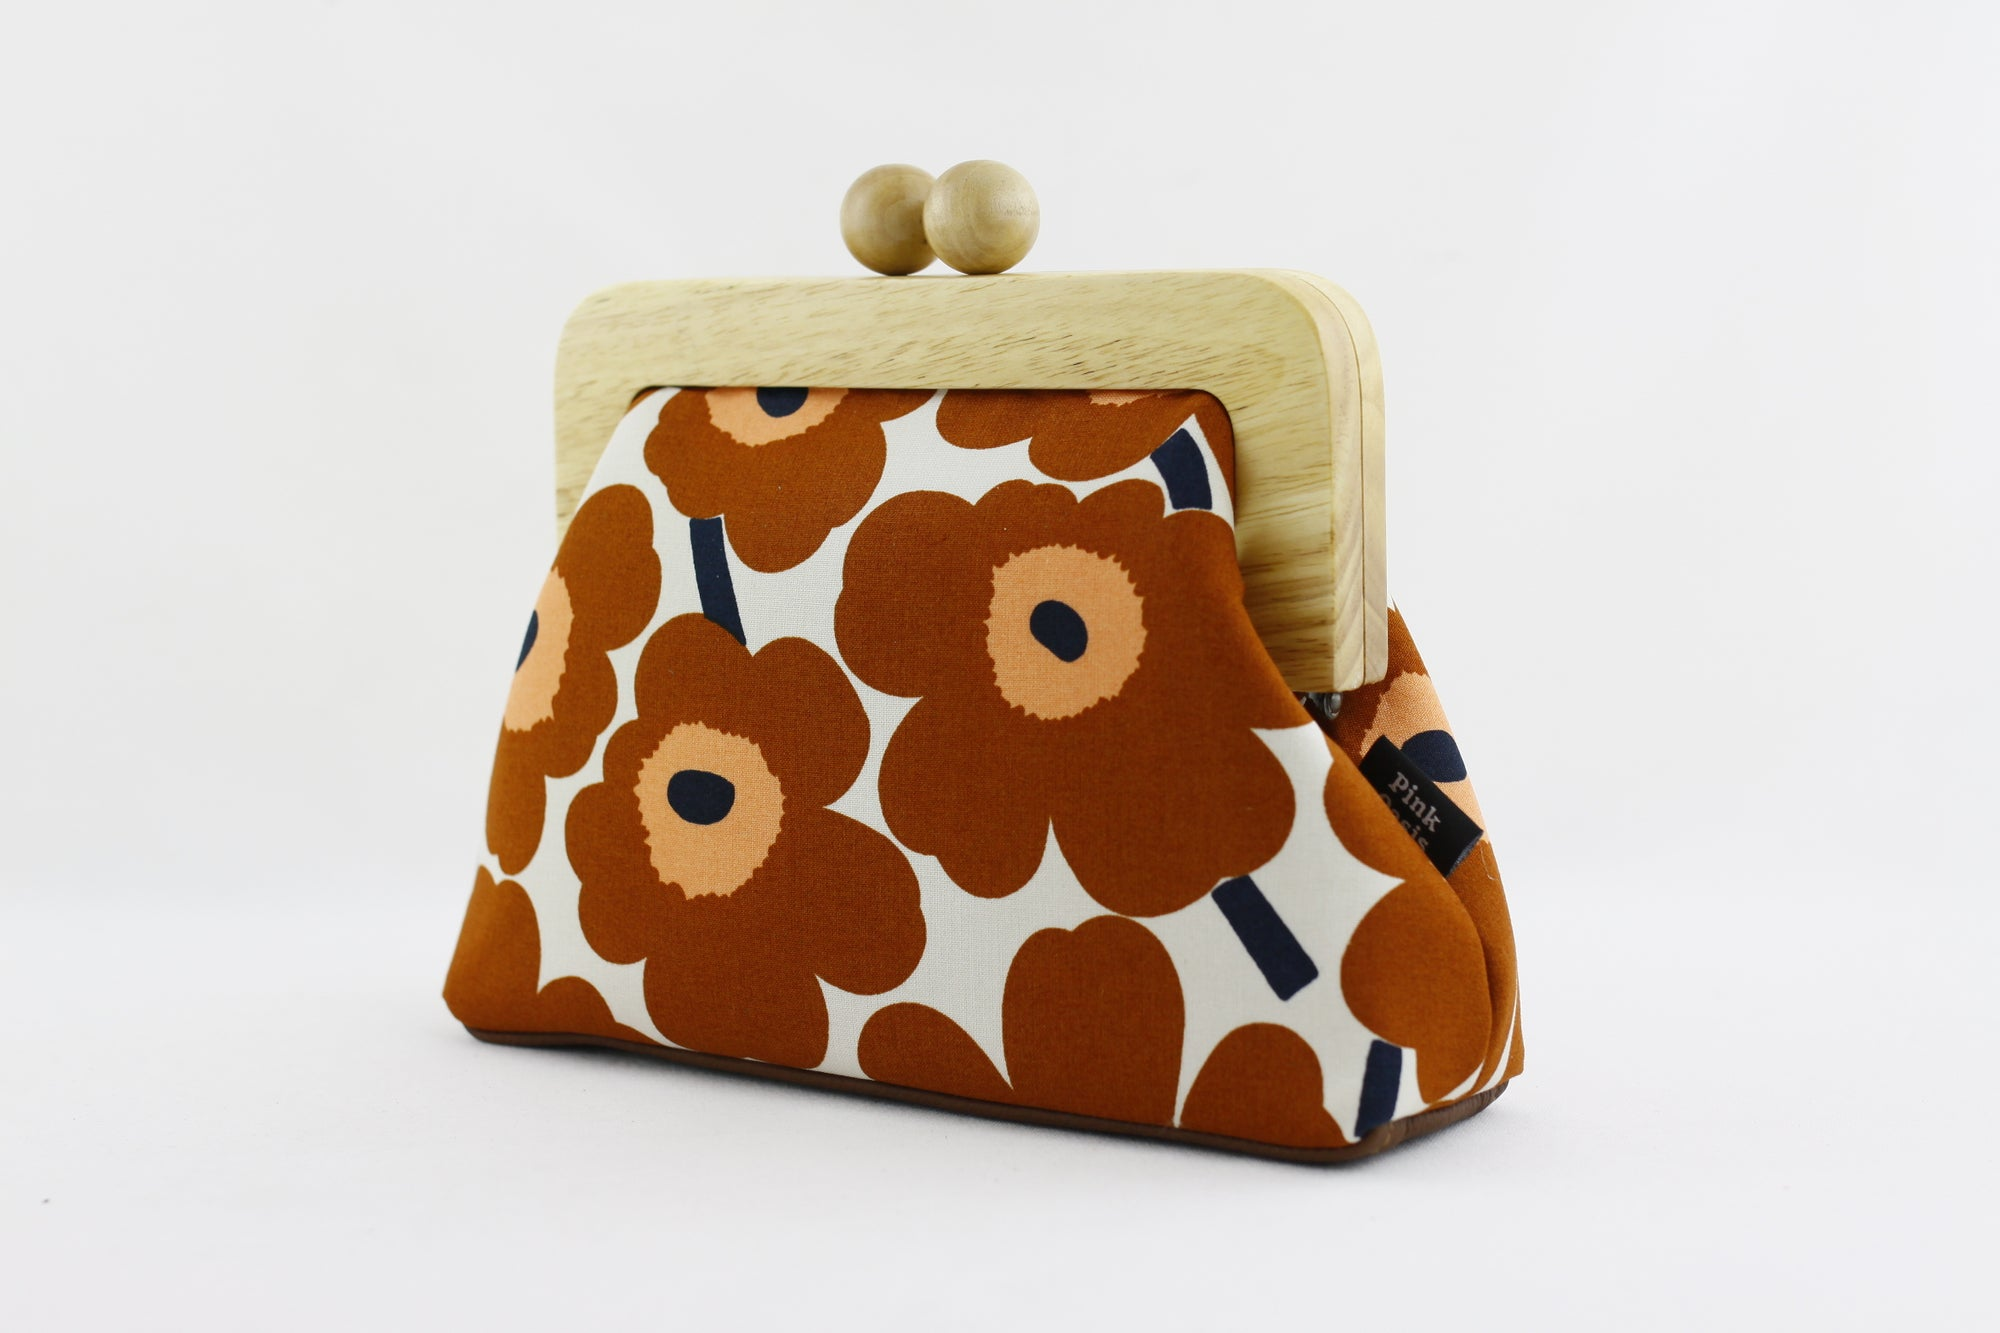 Marimekko Unikko Poppy Chestnut Brown Clutch Bag | PINKOASIS